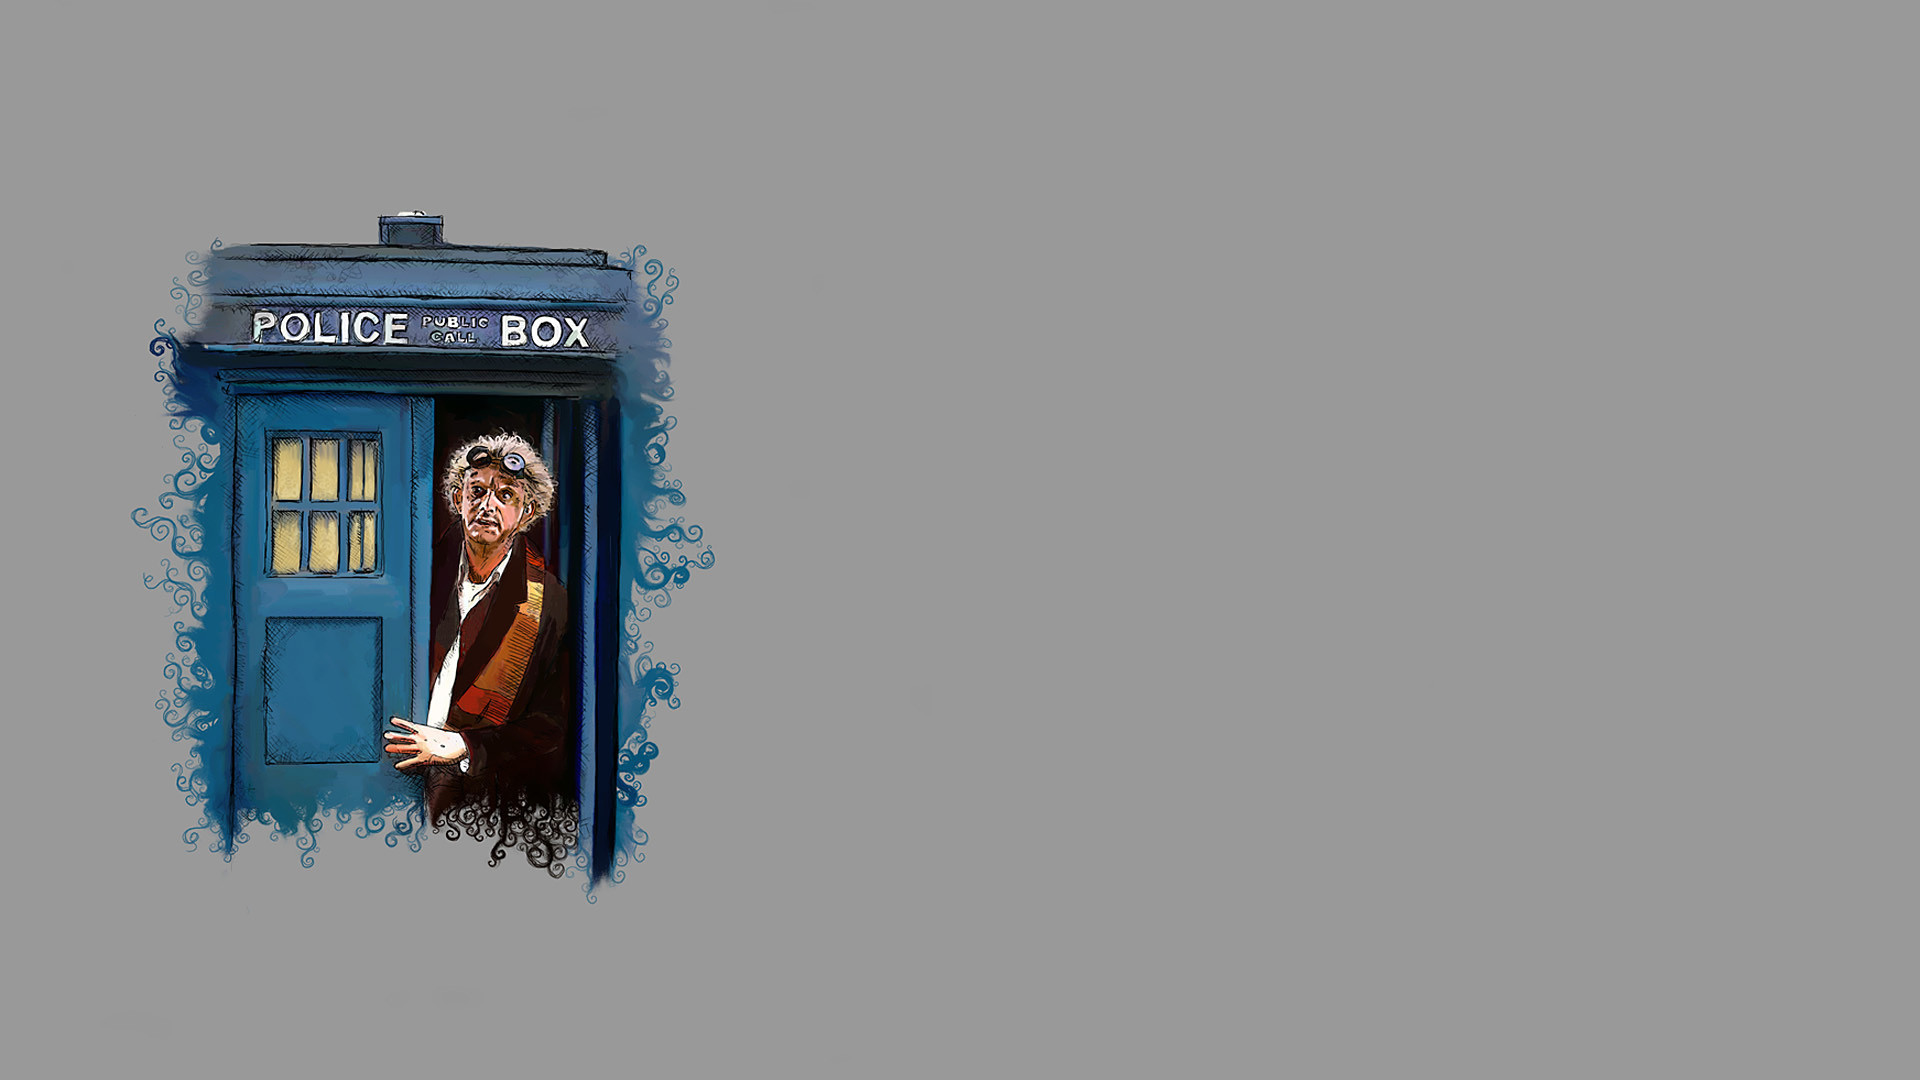 Wallpaper doctor who, back to the future, art